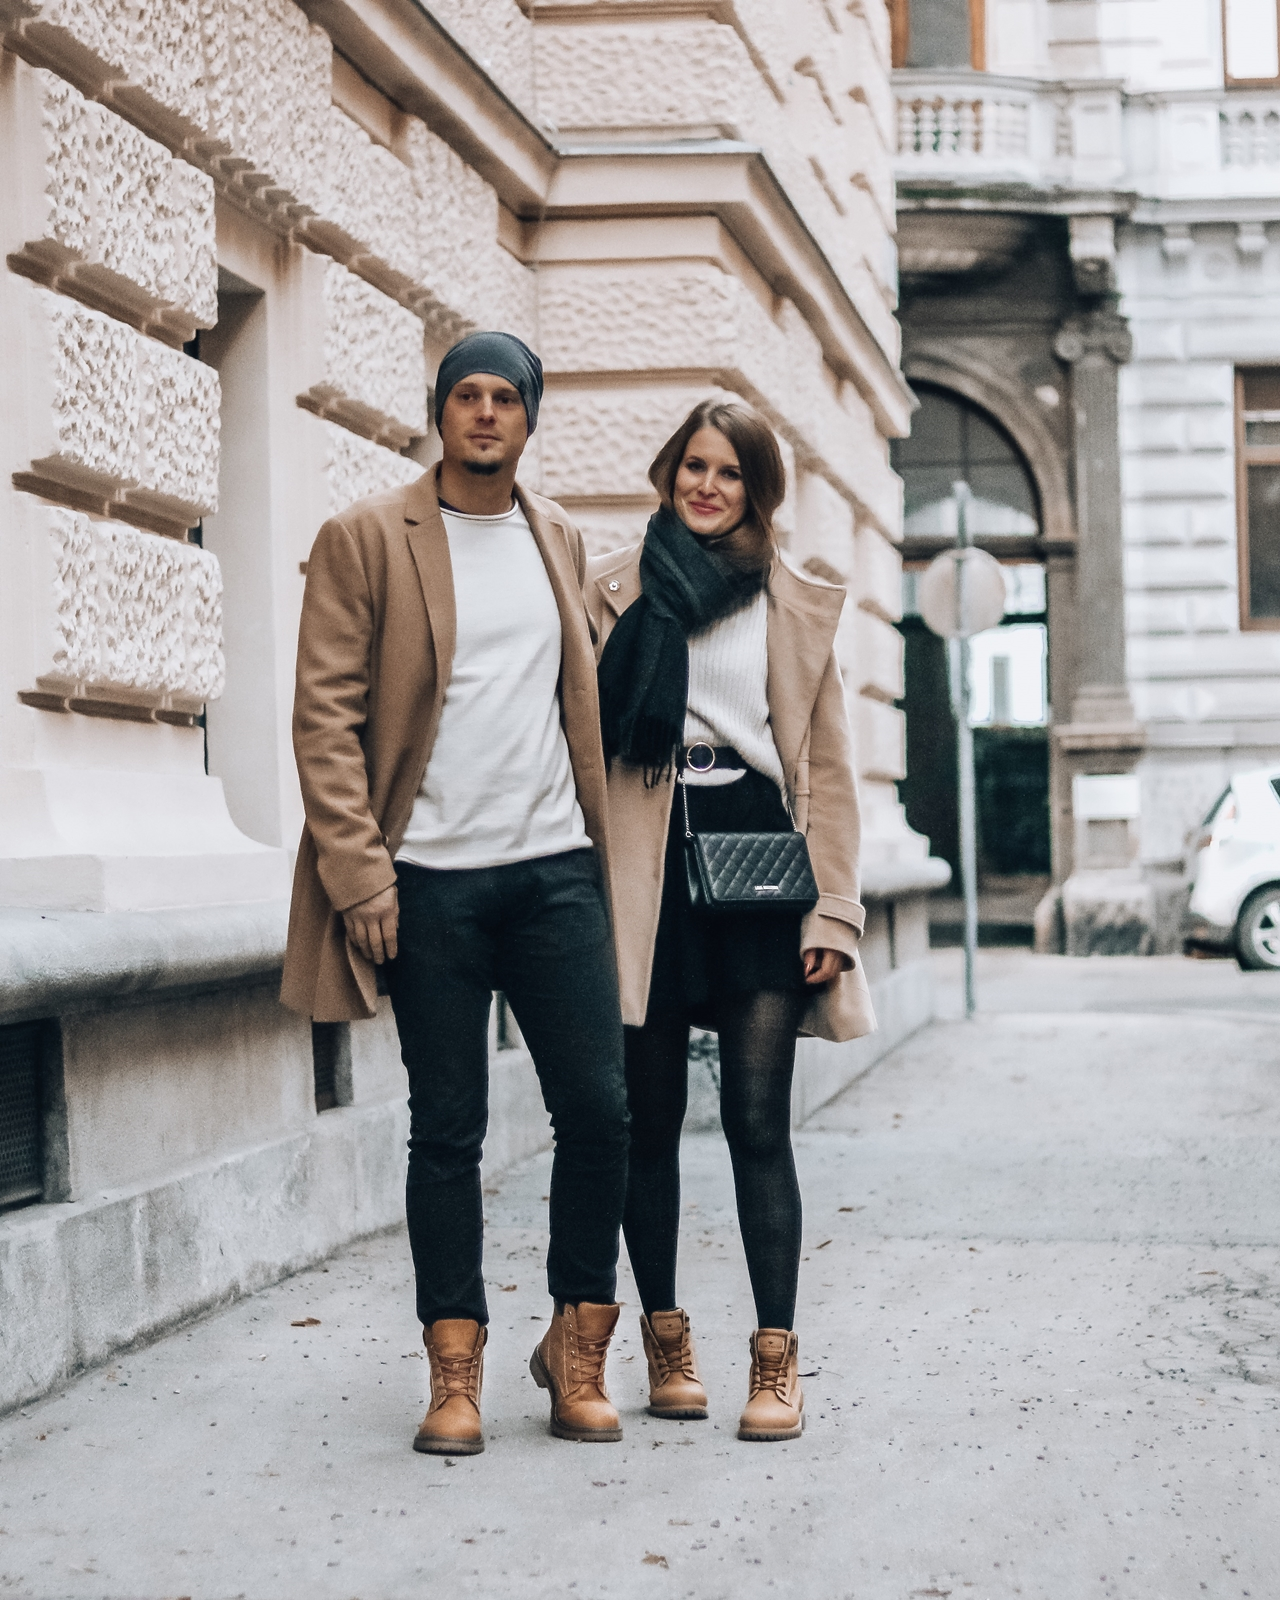 Partnerlook - 10 Outfit Ideen für süße Pärchenlooks - Mode Tipps für Pärchen - Pärchenoutfits - Pärchen Mode - Couple Style - Couple Fashion - Couple Goals - Outfitideen - Stylingtipps - Outfit für Pärchen - Mode für Paare - Fashionladyloves by Tamara Wagner - Fashion Blog - Fashionbloggerin